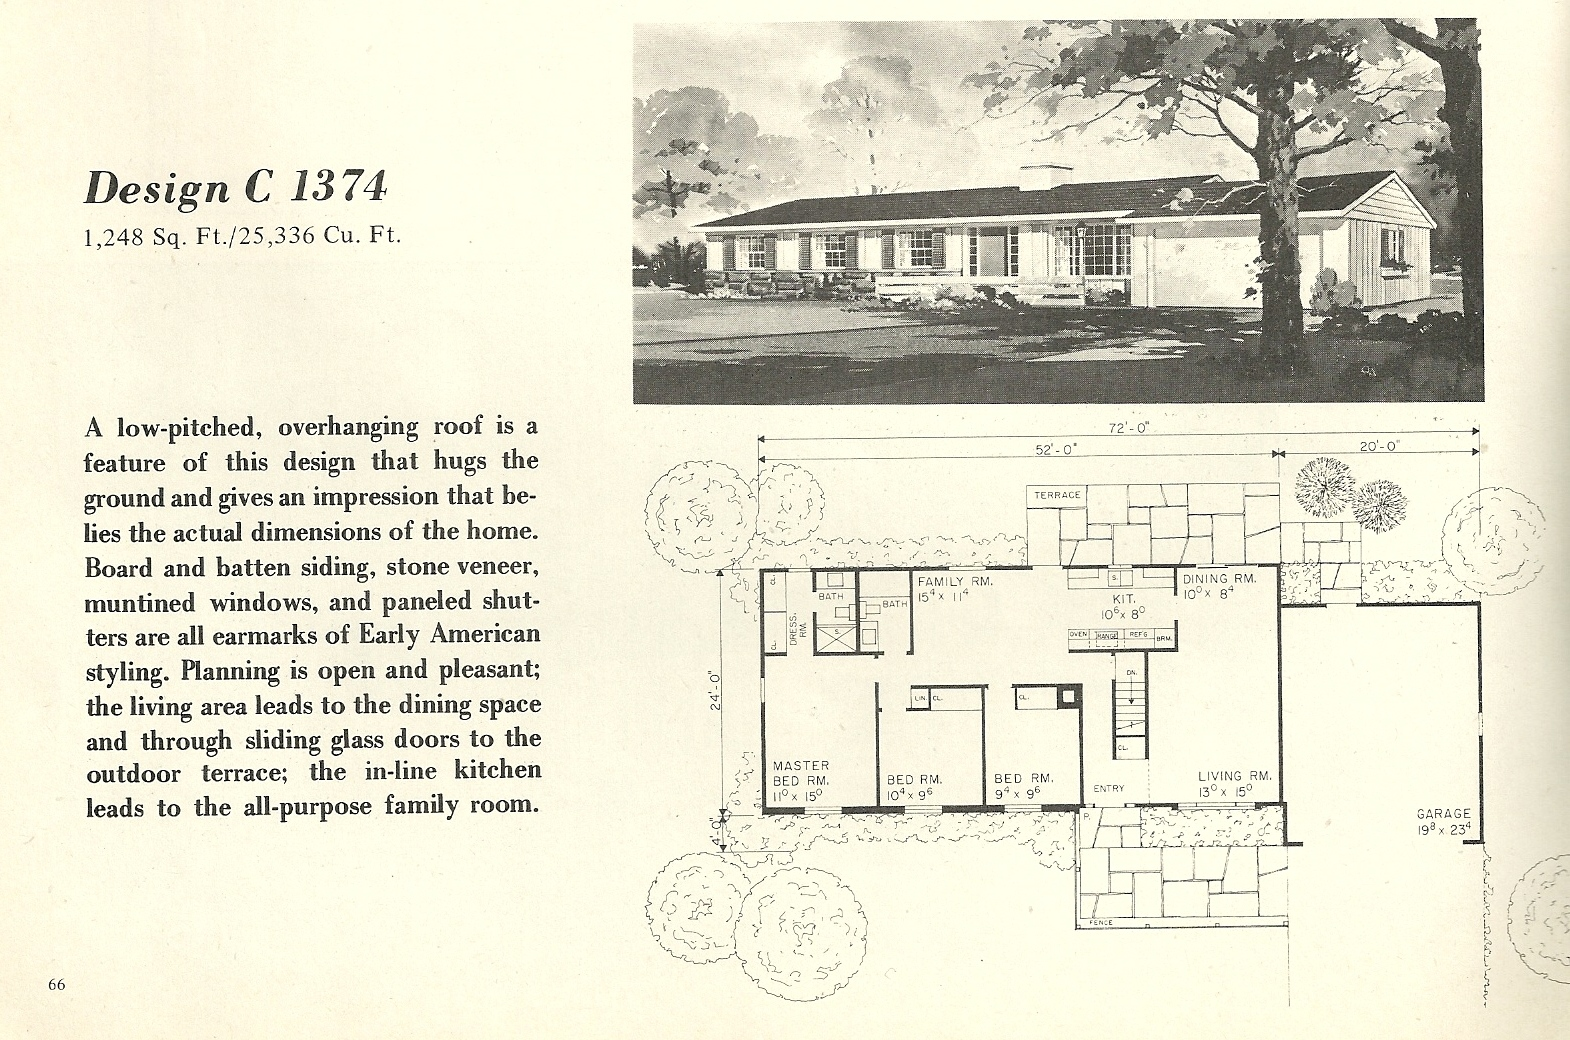 Vintage House Plans 1374 Antique Alter Ego